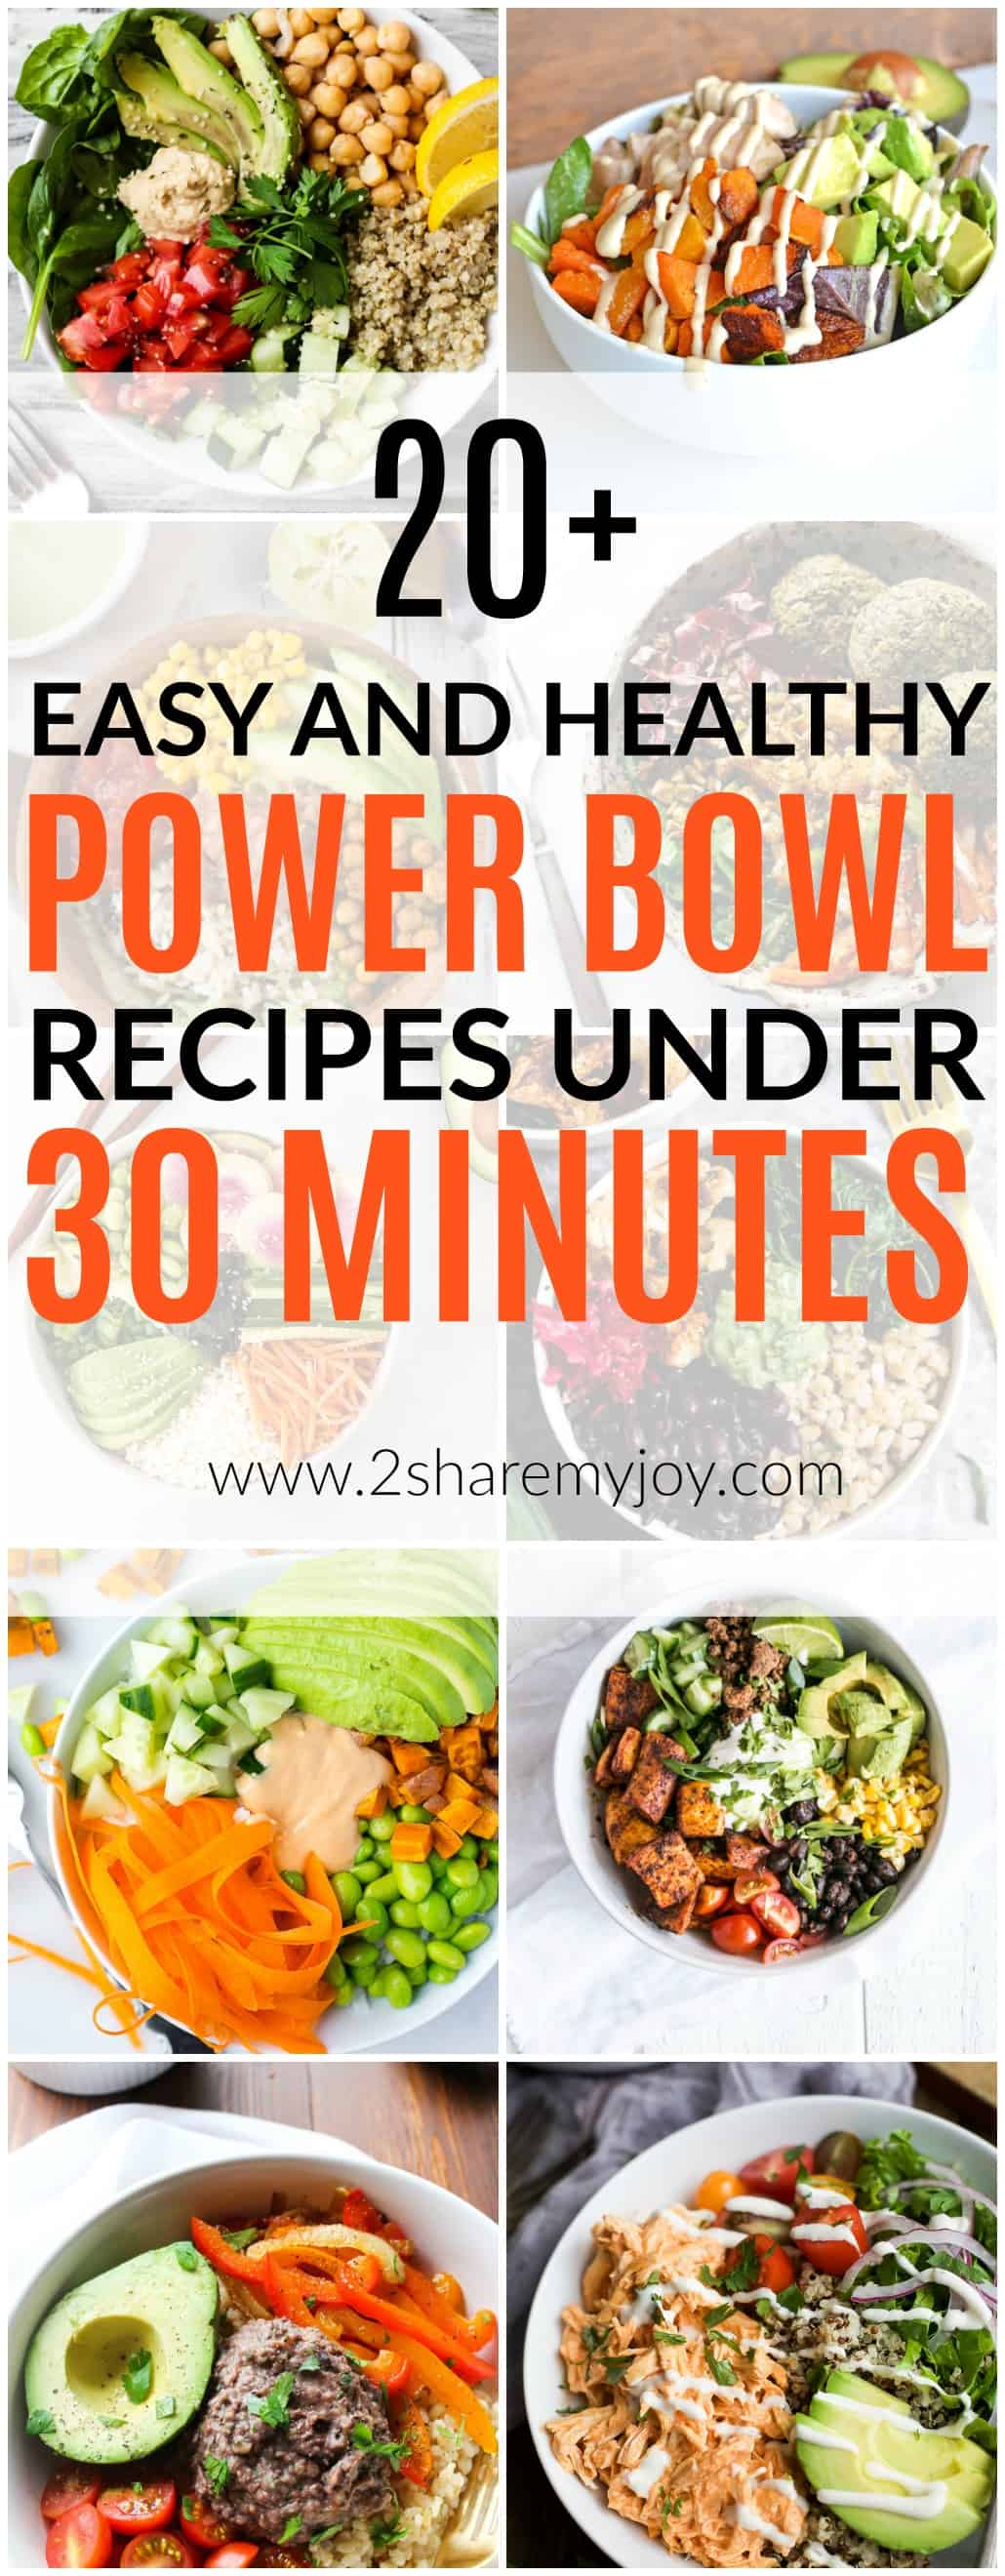 20 + Easy and Healthy Power Bowl Recipes under 30 Minutes that are all clean eating recipes with fresh and wholesome foods. No refined sugars or other additives. Buddha bowls provide a great nutrition for your body. Some of the power bowl recipes belong to a keto diet, paleo diet, vegan, or vegetarian diet. All recipes are between 300 and 500 calories #buddhabowl #powerbowl